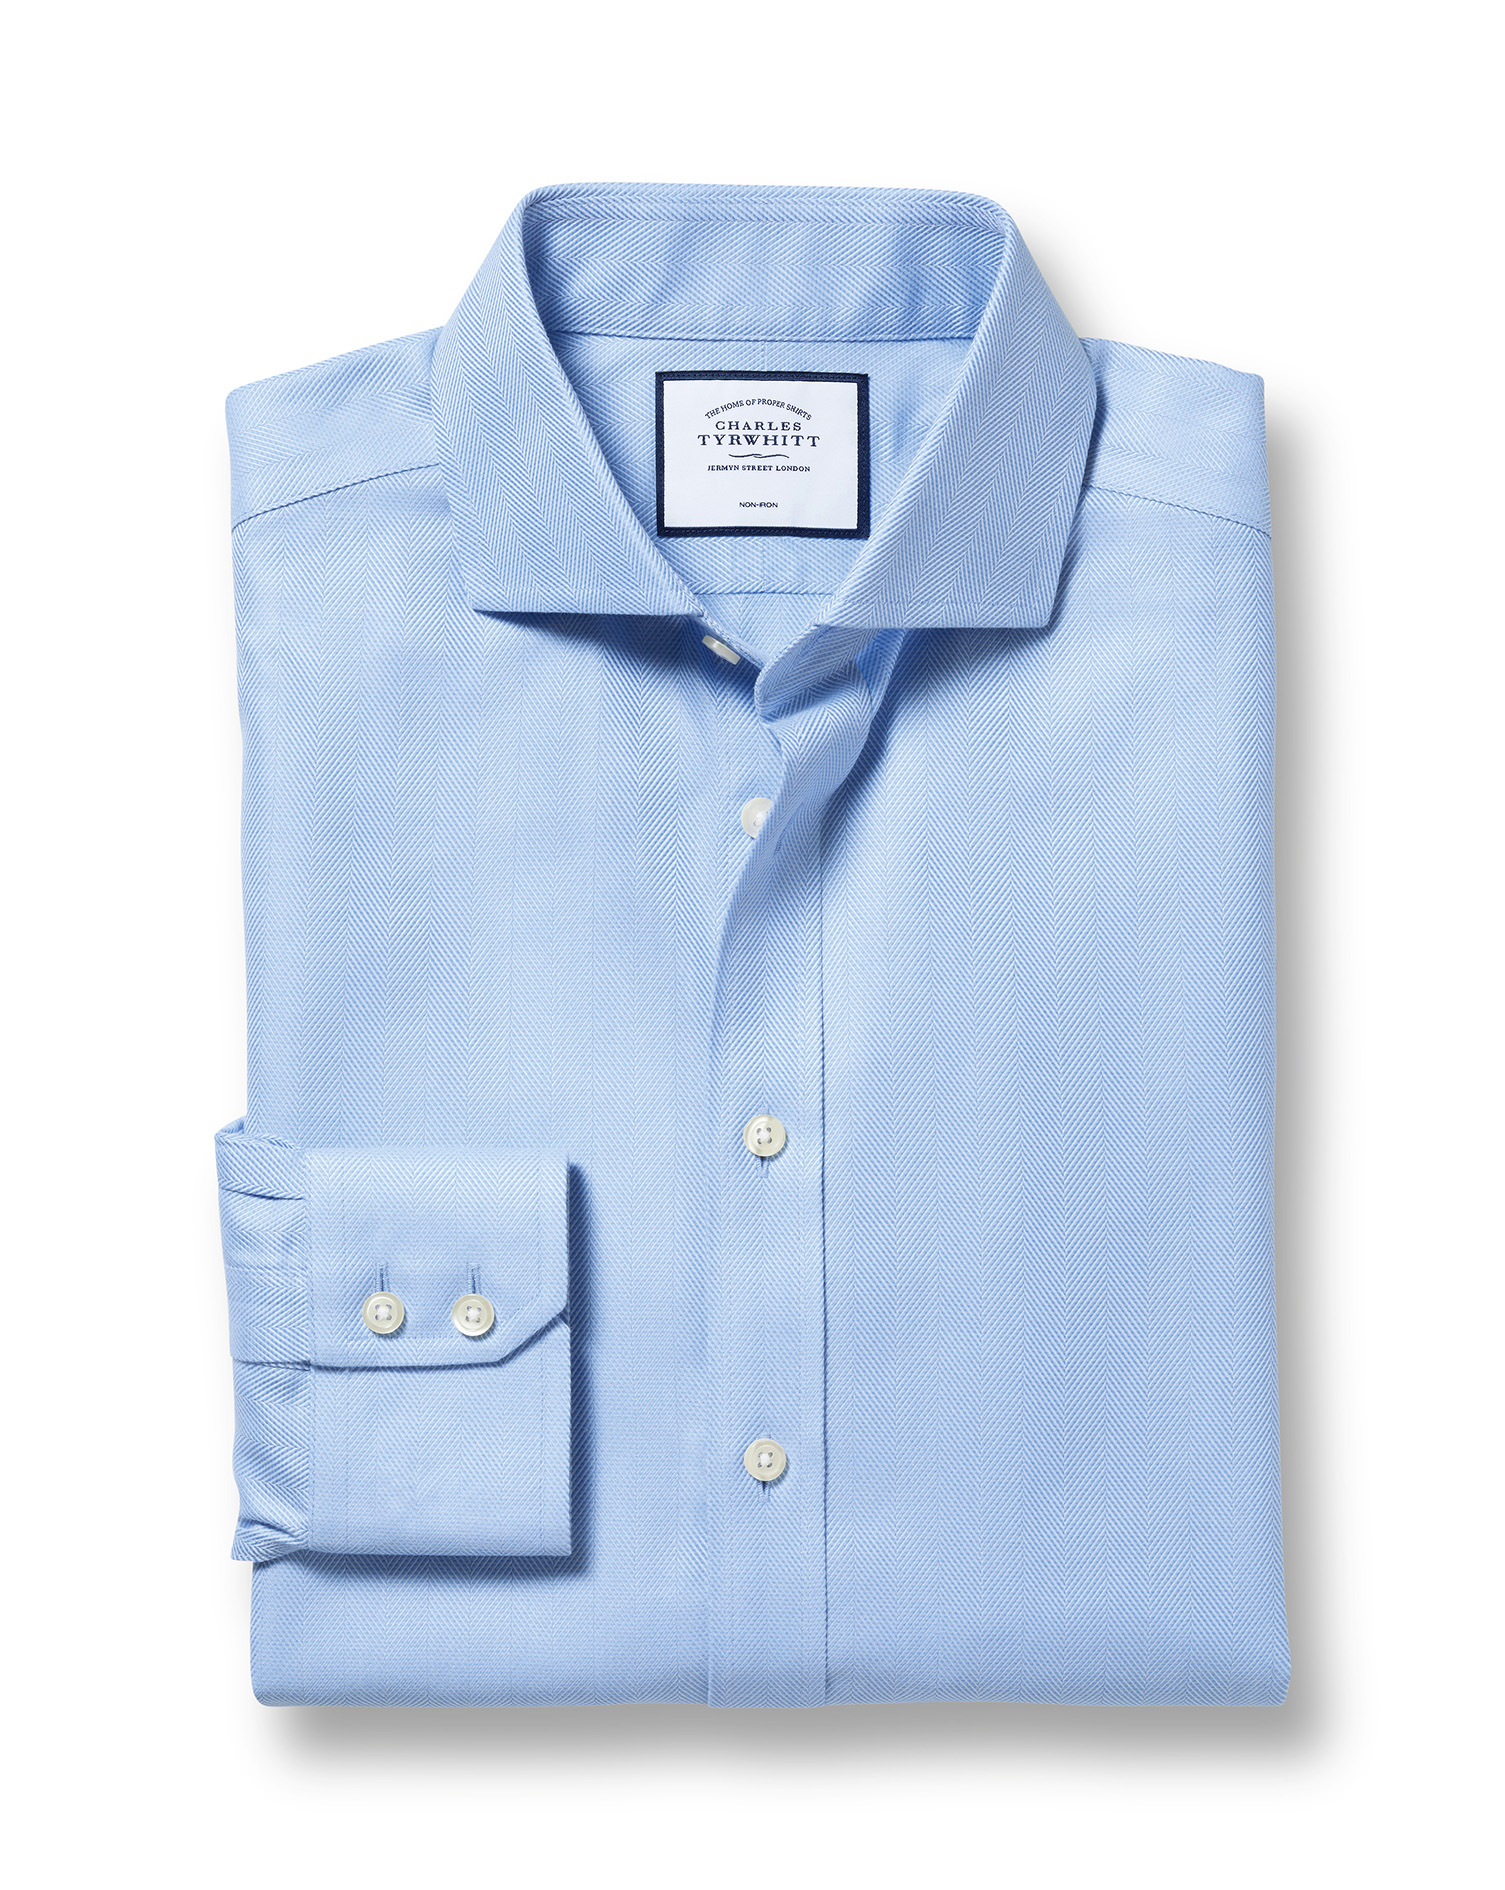 Slim Fit Cutaway Non-Iron Herringbone Sky Blue Cotton Formal Shirt Single Cuff Size 16.5/33 by Charl